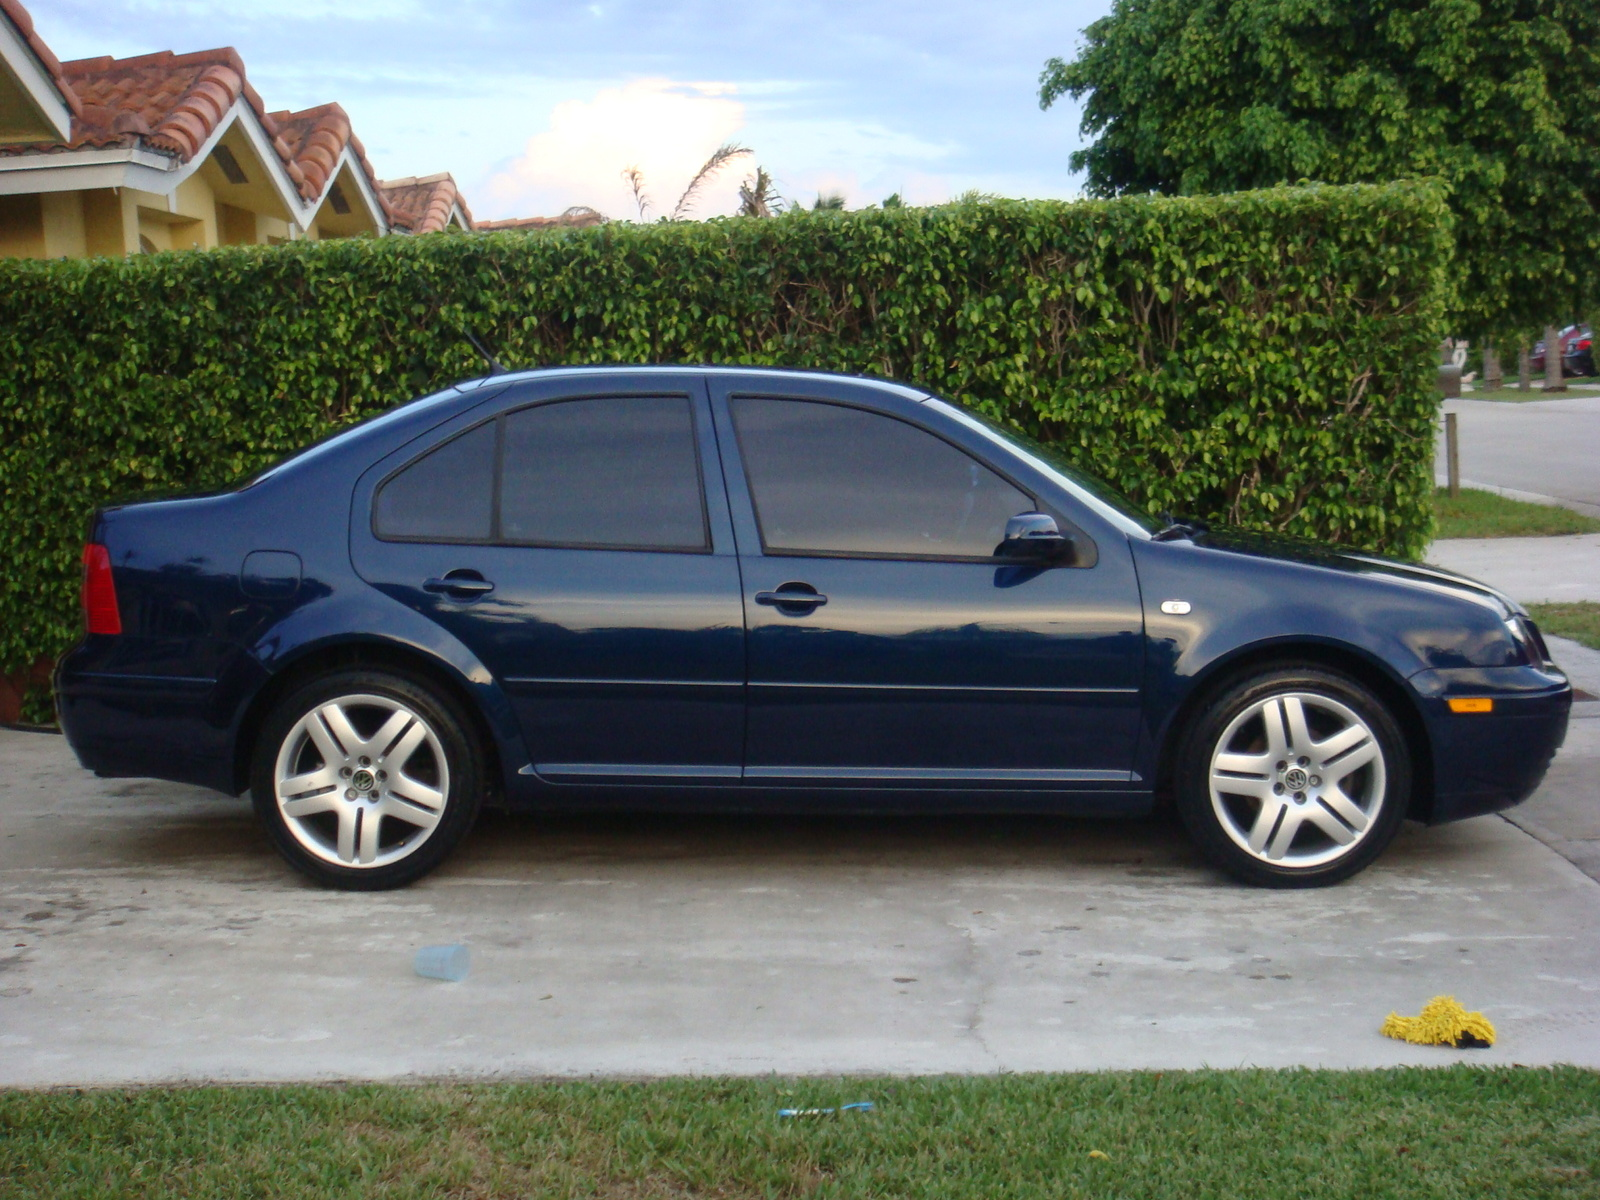 Volkswagen Jetta 1.4 2004 photo - 1